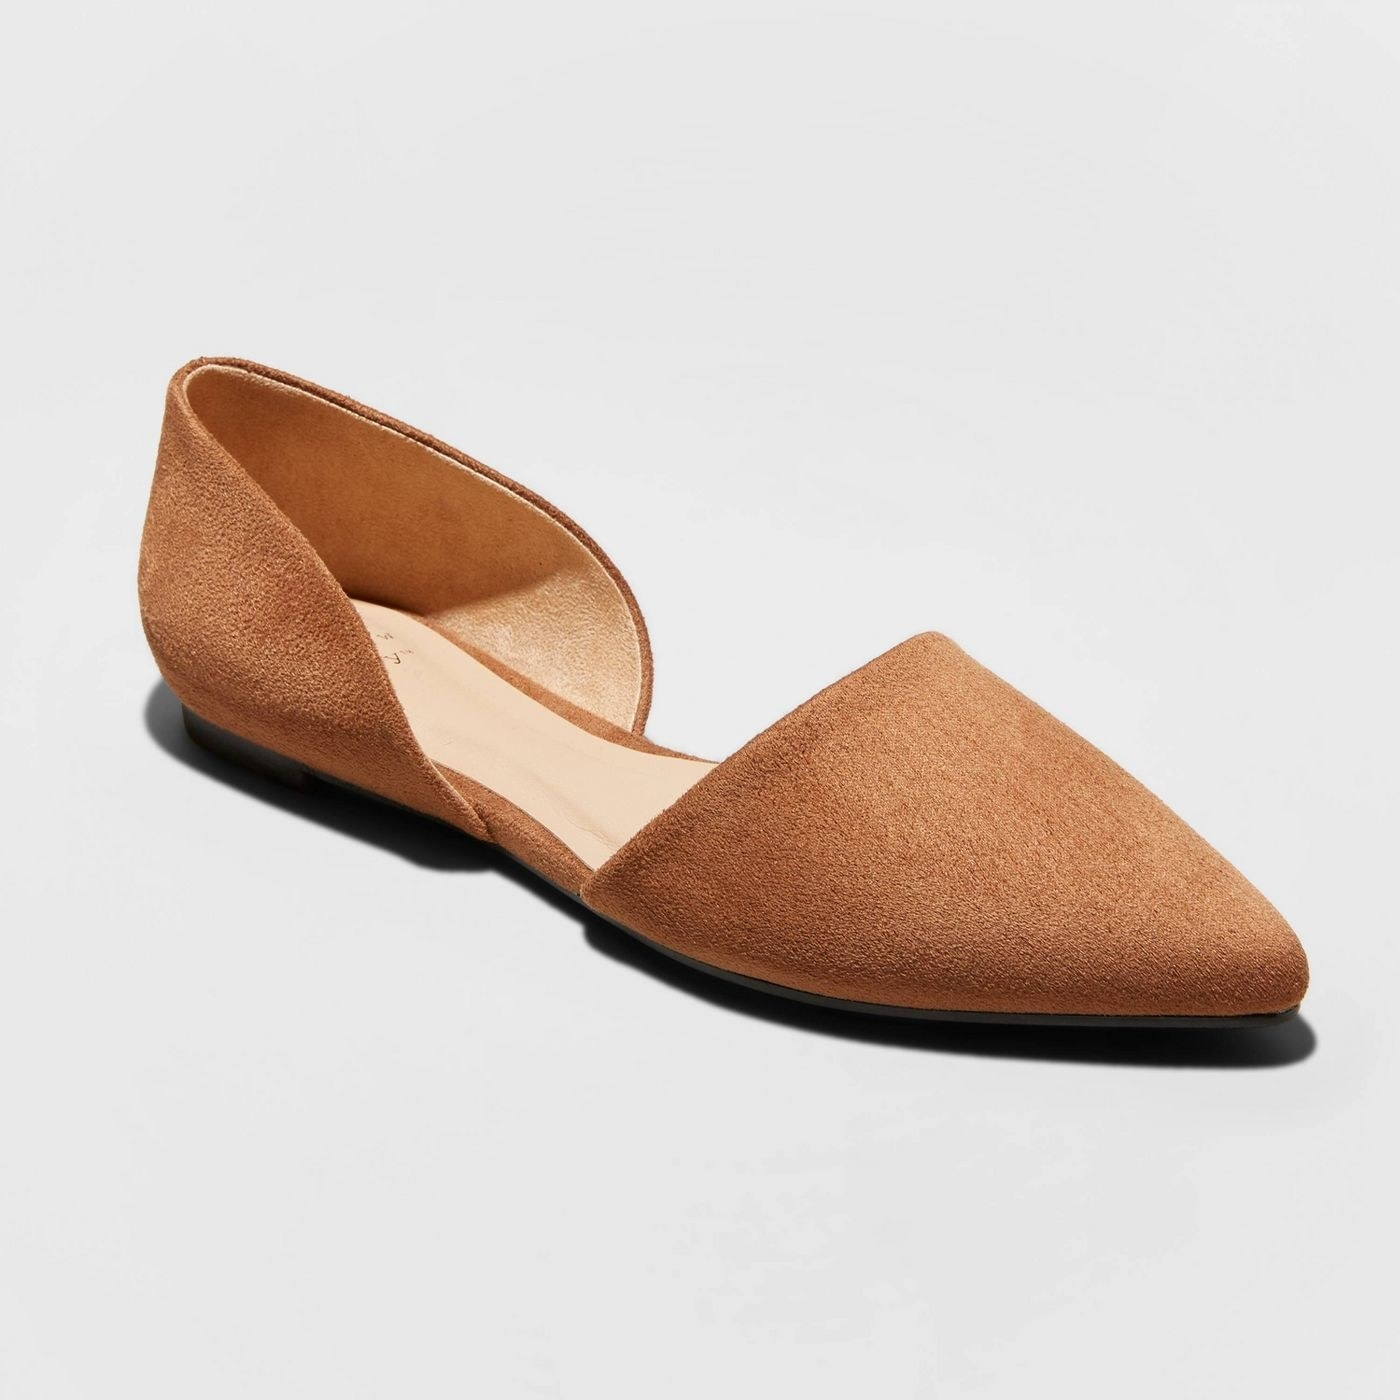 Pointed toe camel flats made from suede